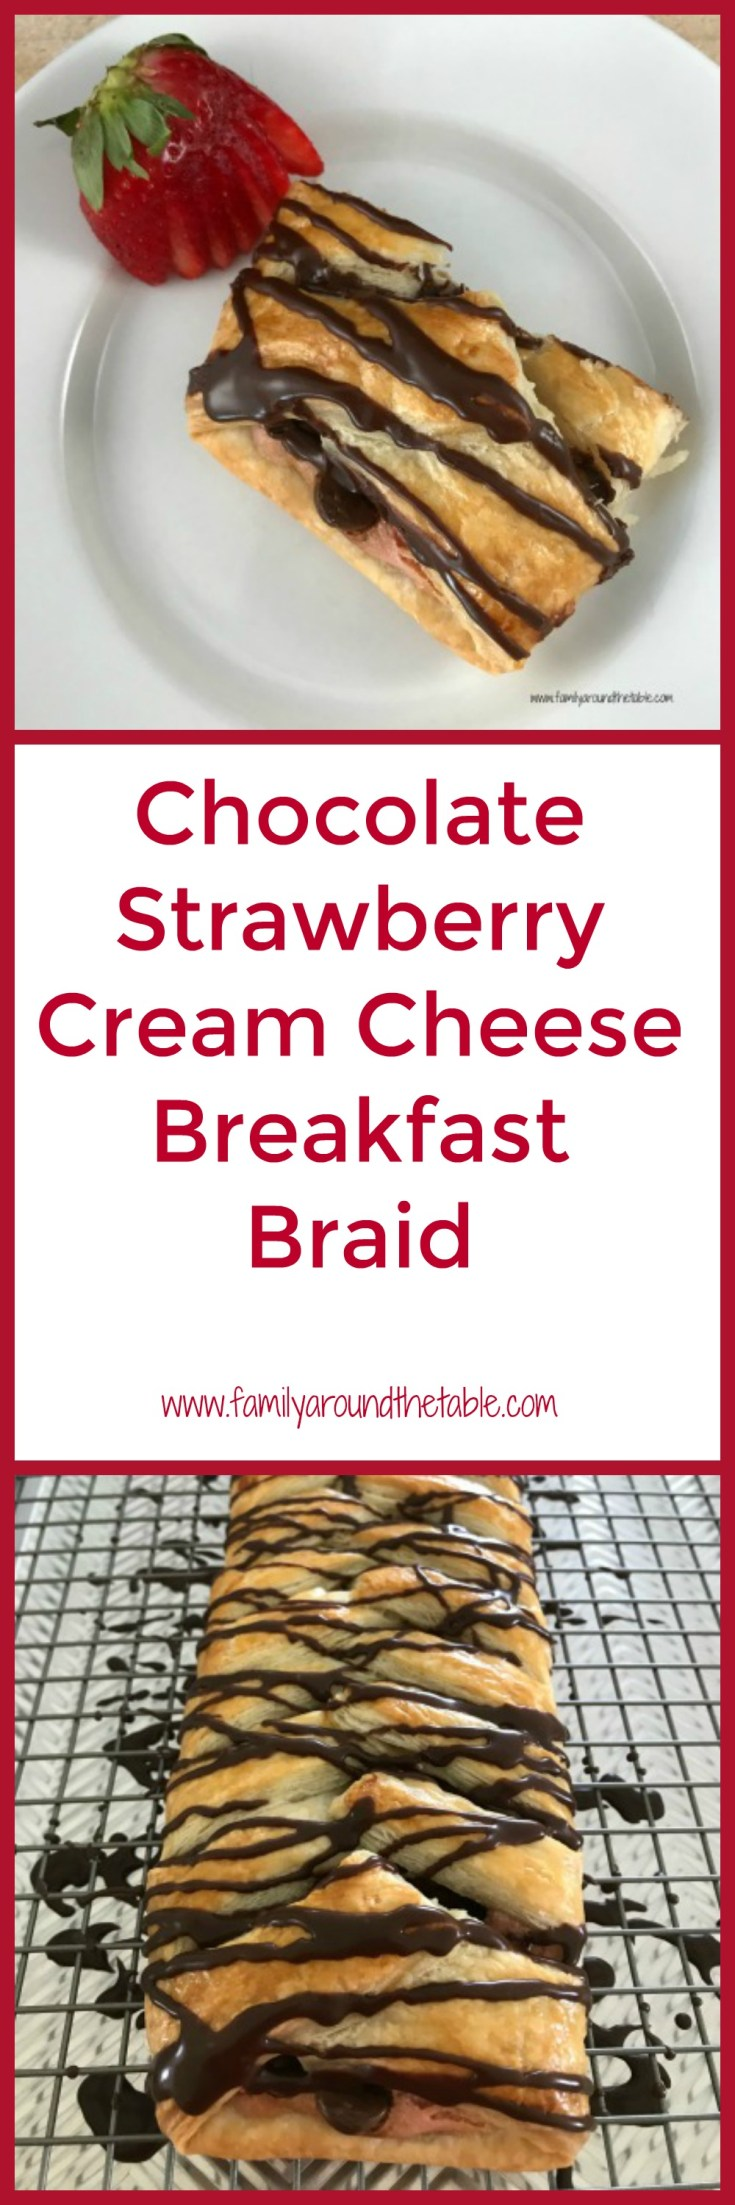 Chocolate Strawberry Cream Cheese Breakfast Braid is an easy yet impressive brunch treat. Use fresh strawberries in the cream cheese. Your guests are sure to enjoy every delectable bite.